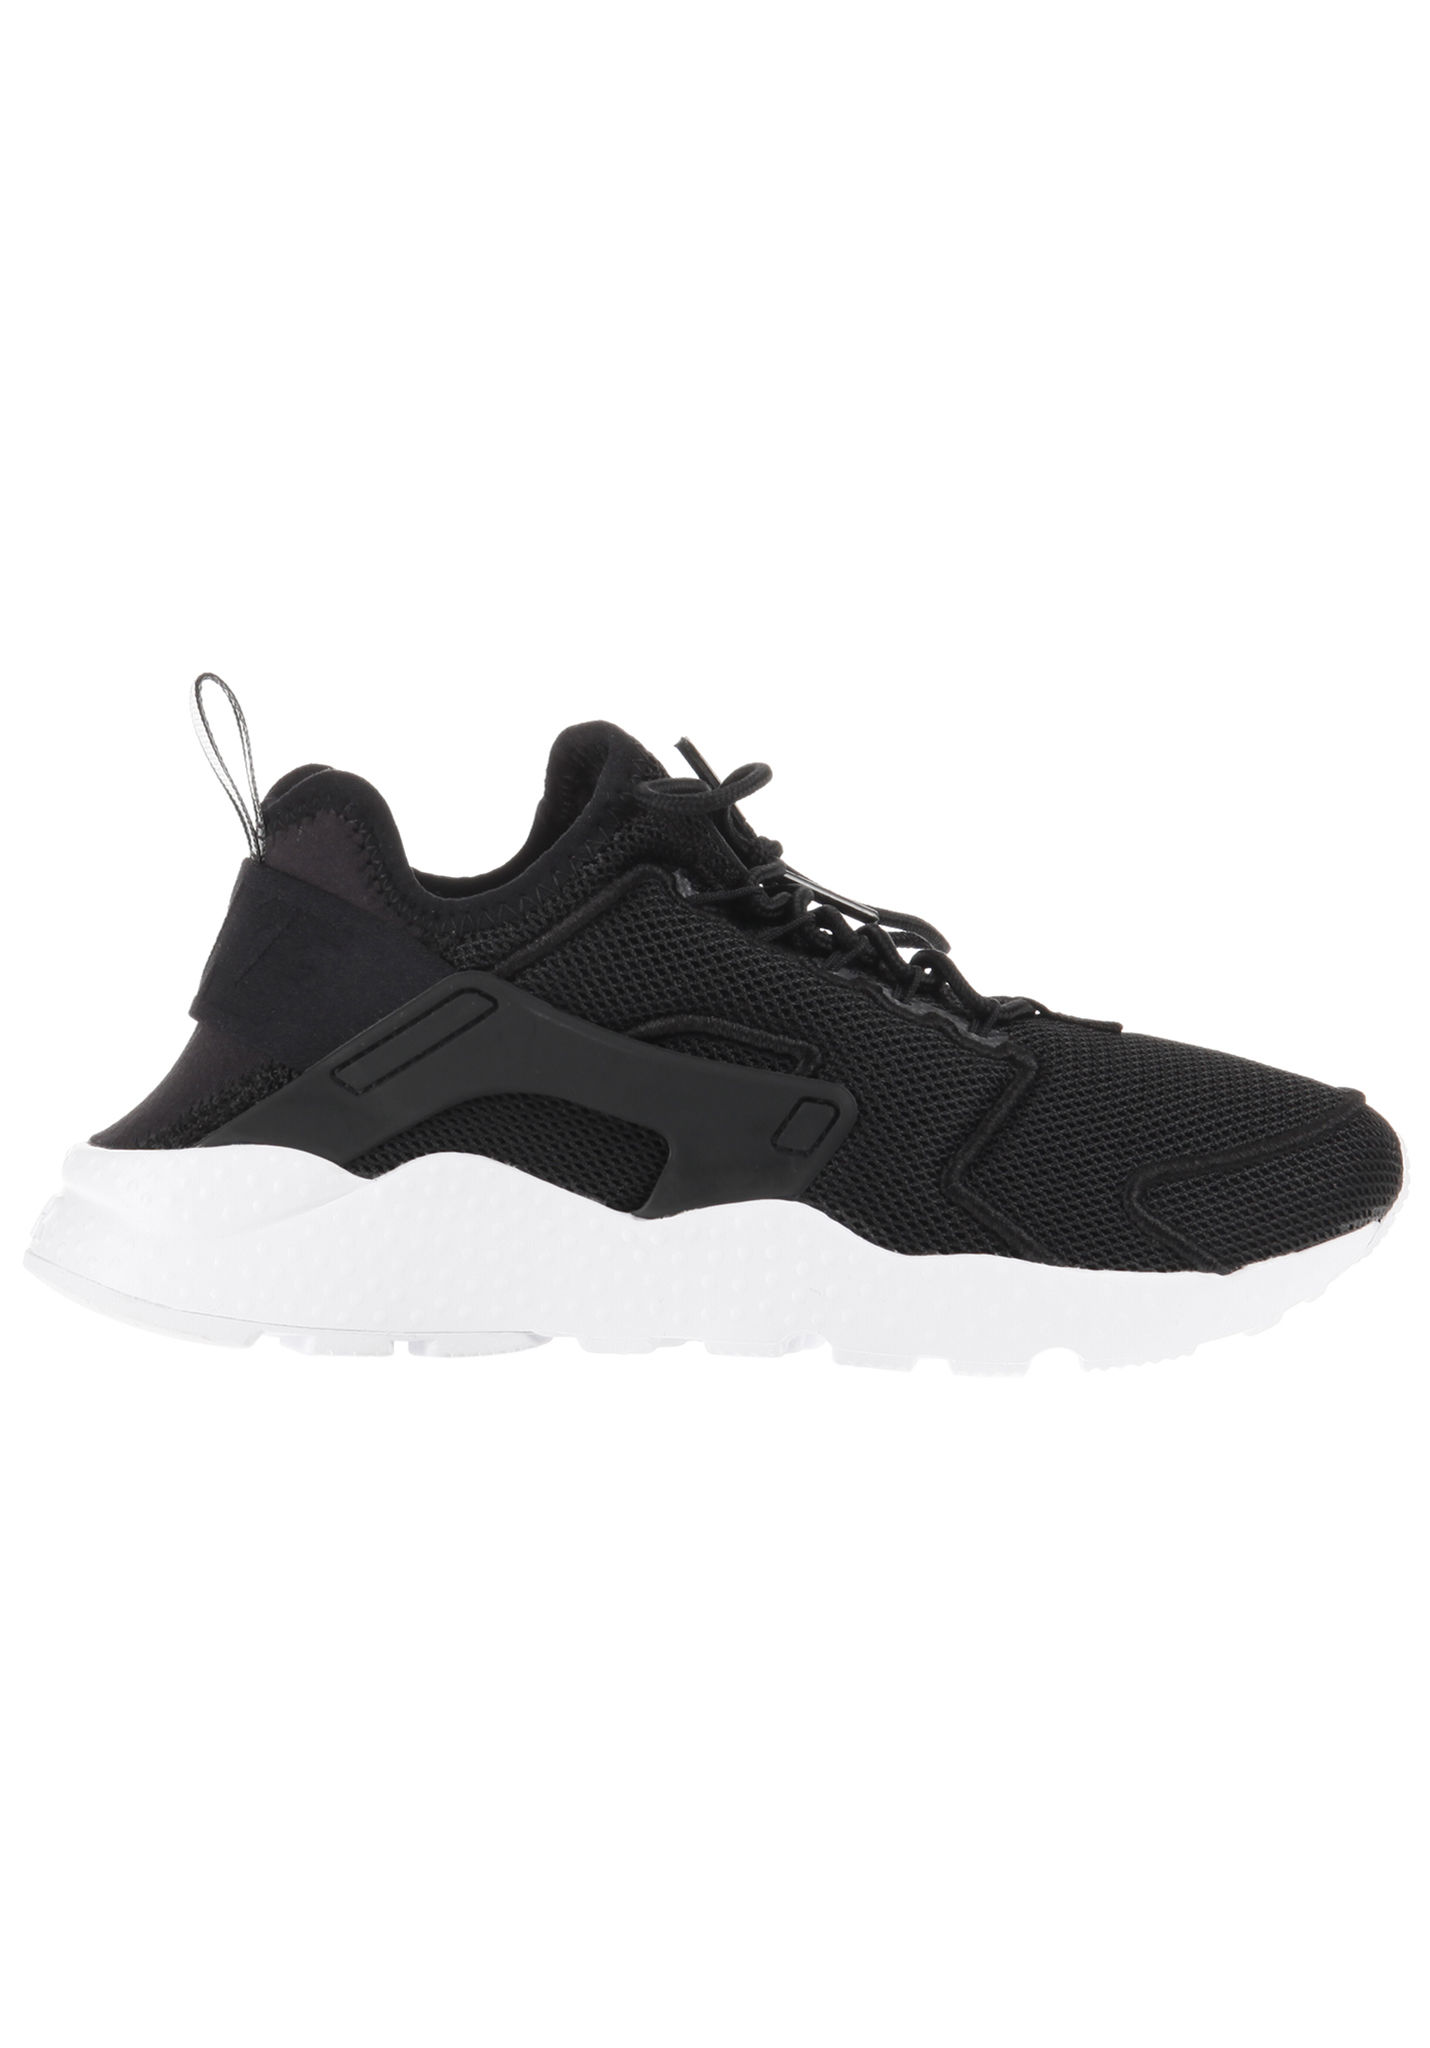 new product fb0b3 857b3 NIKE SPORTSWEAR Air Huarache Run Ultra BR - Sneaker für Damen - Schwarz -  Planet Sports